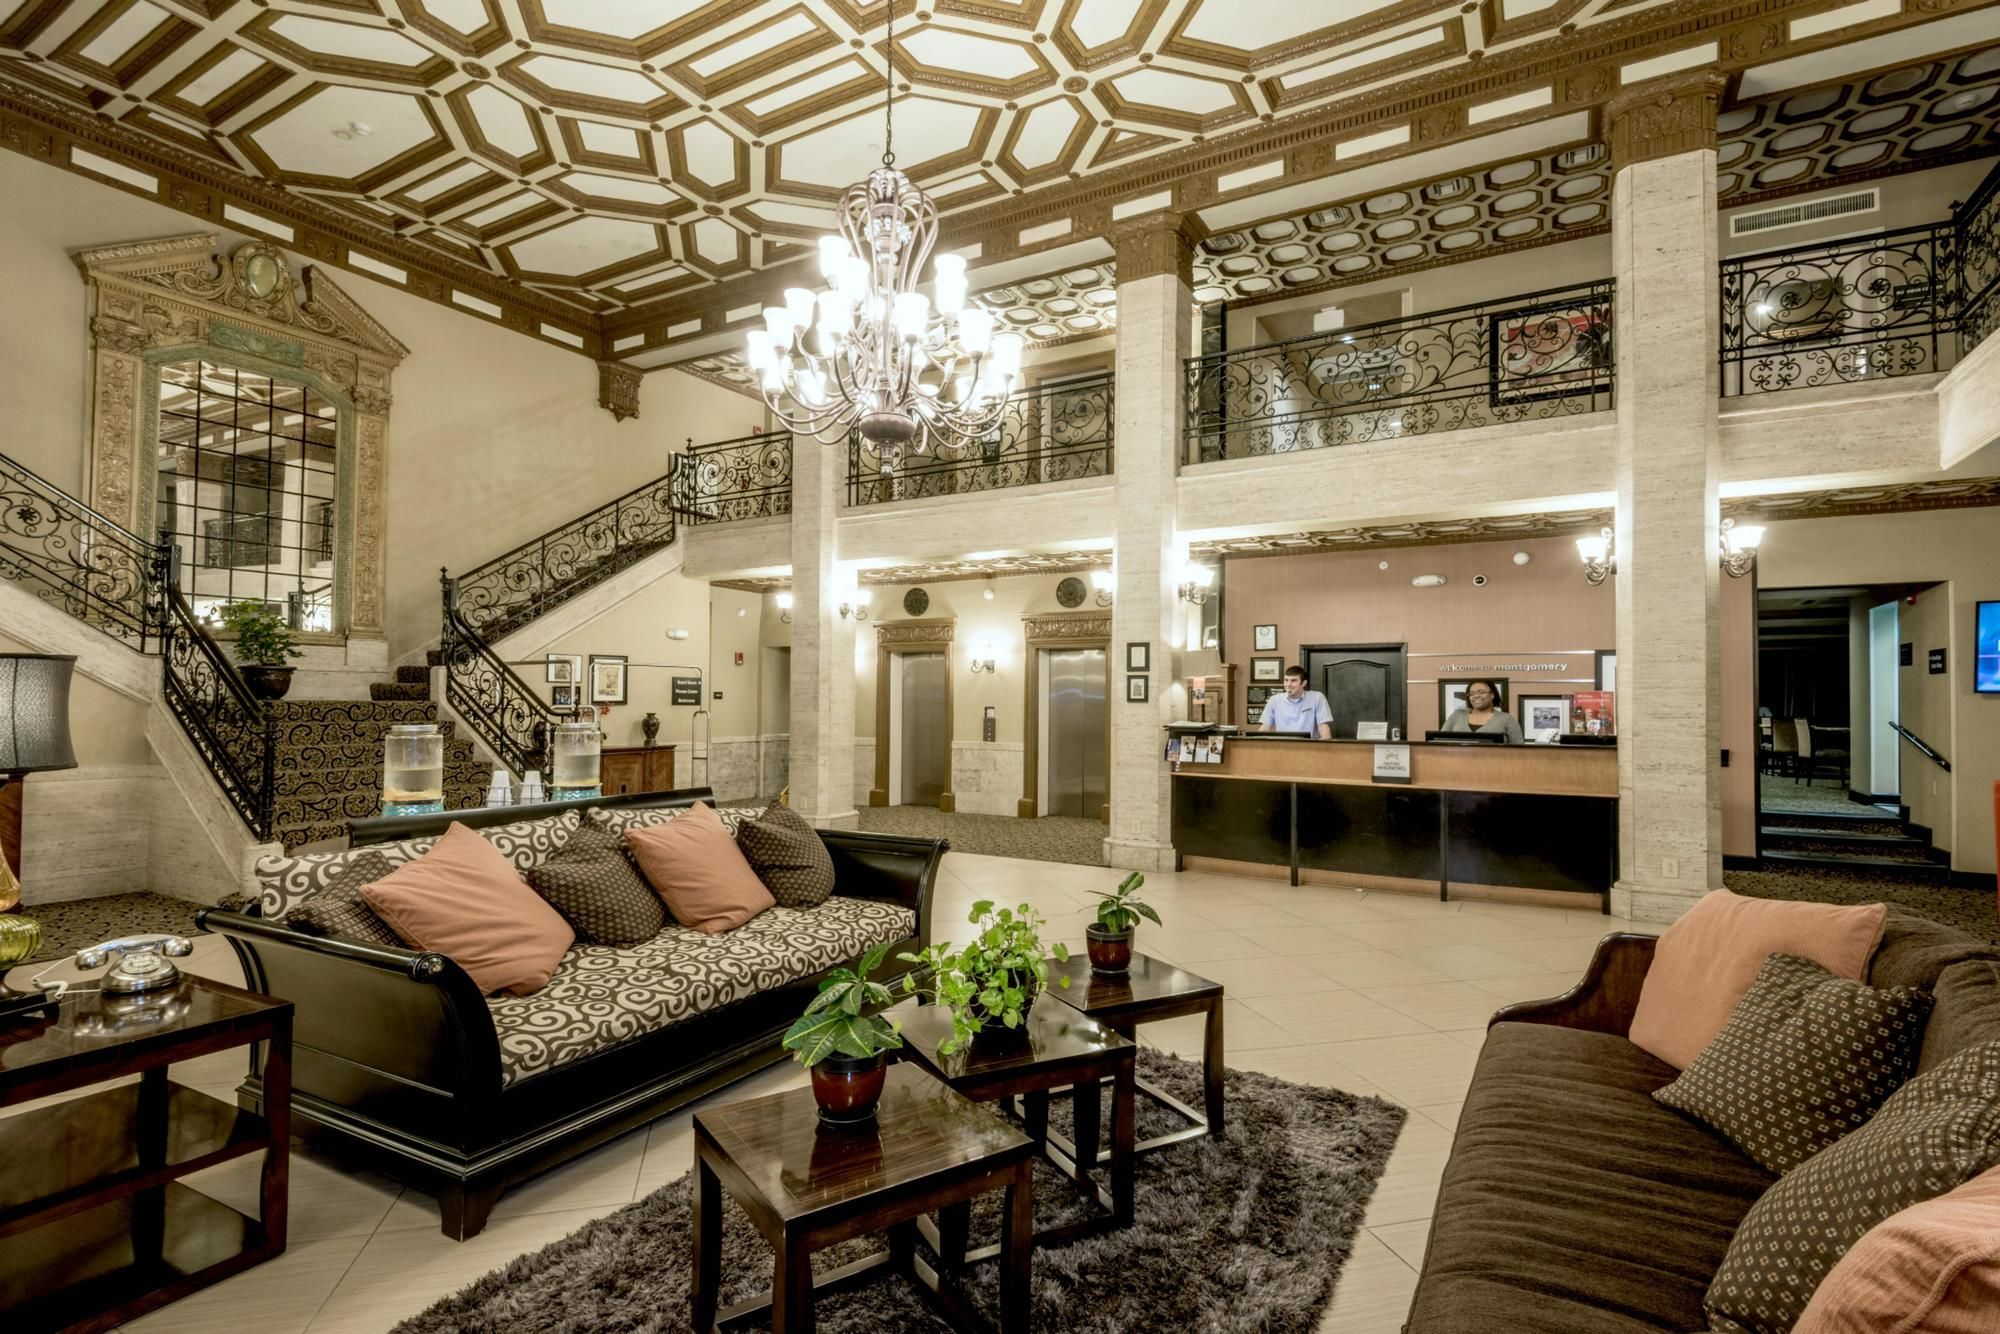 Montgomery Hotel Coupons for Montgomery Alabama